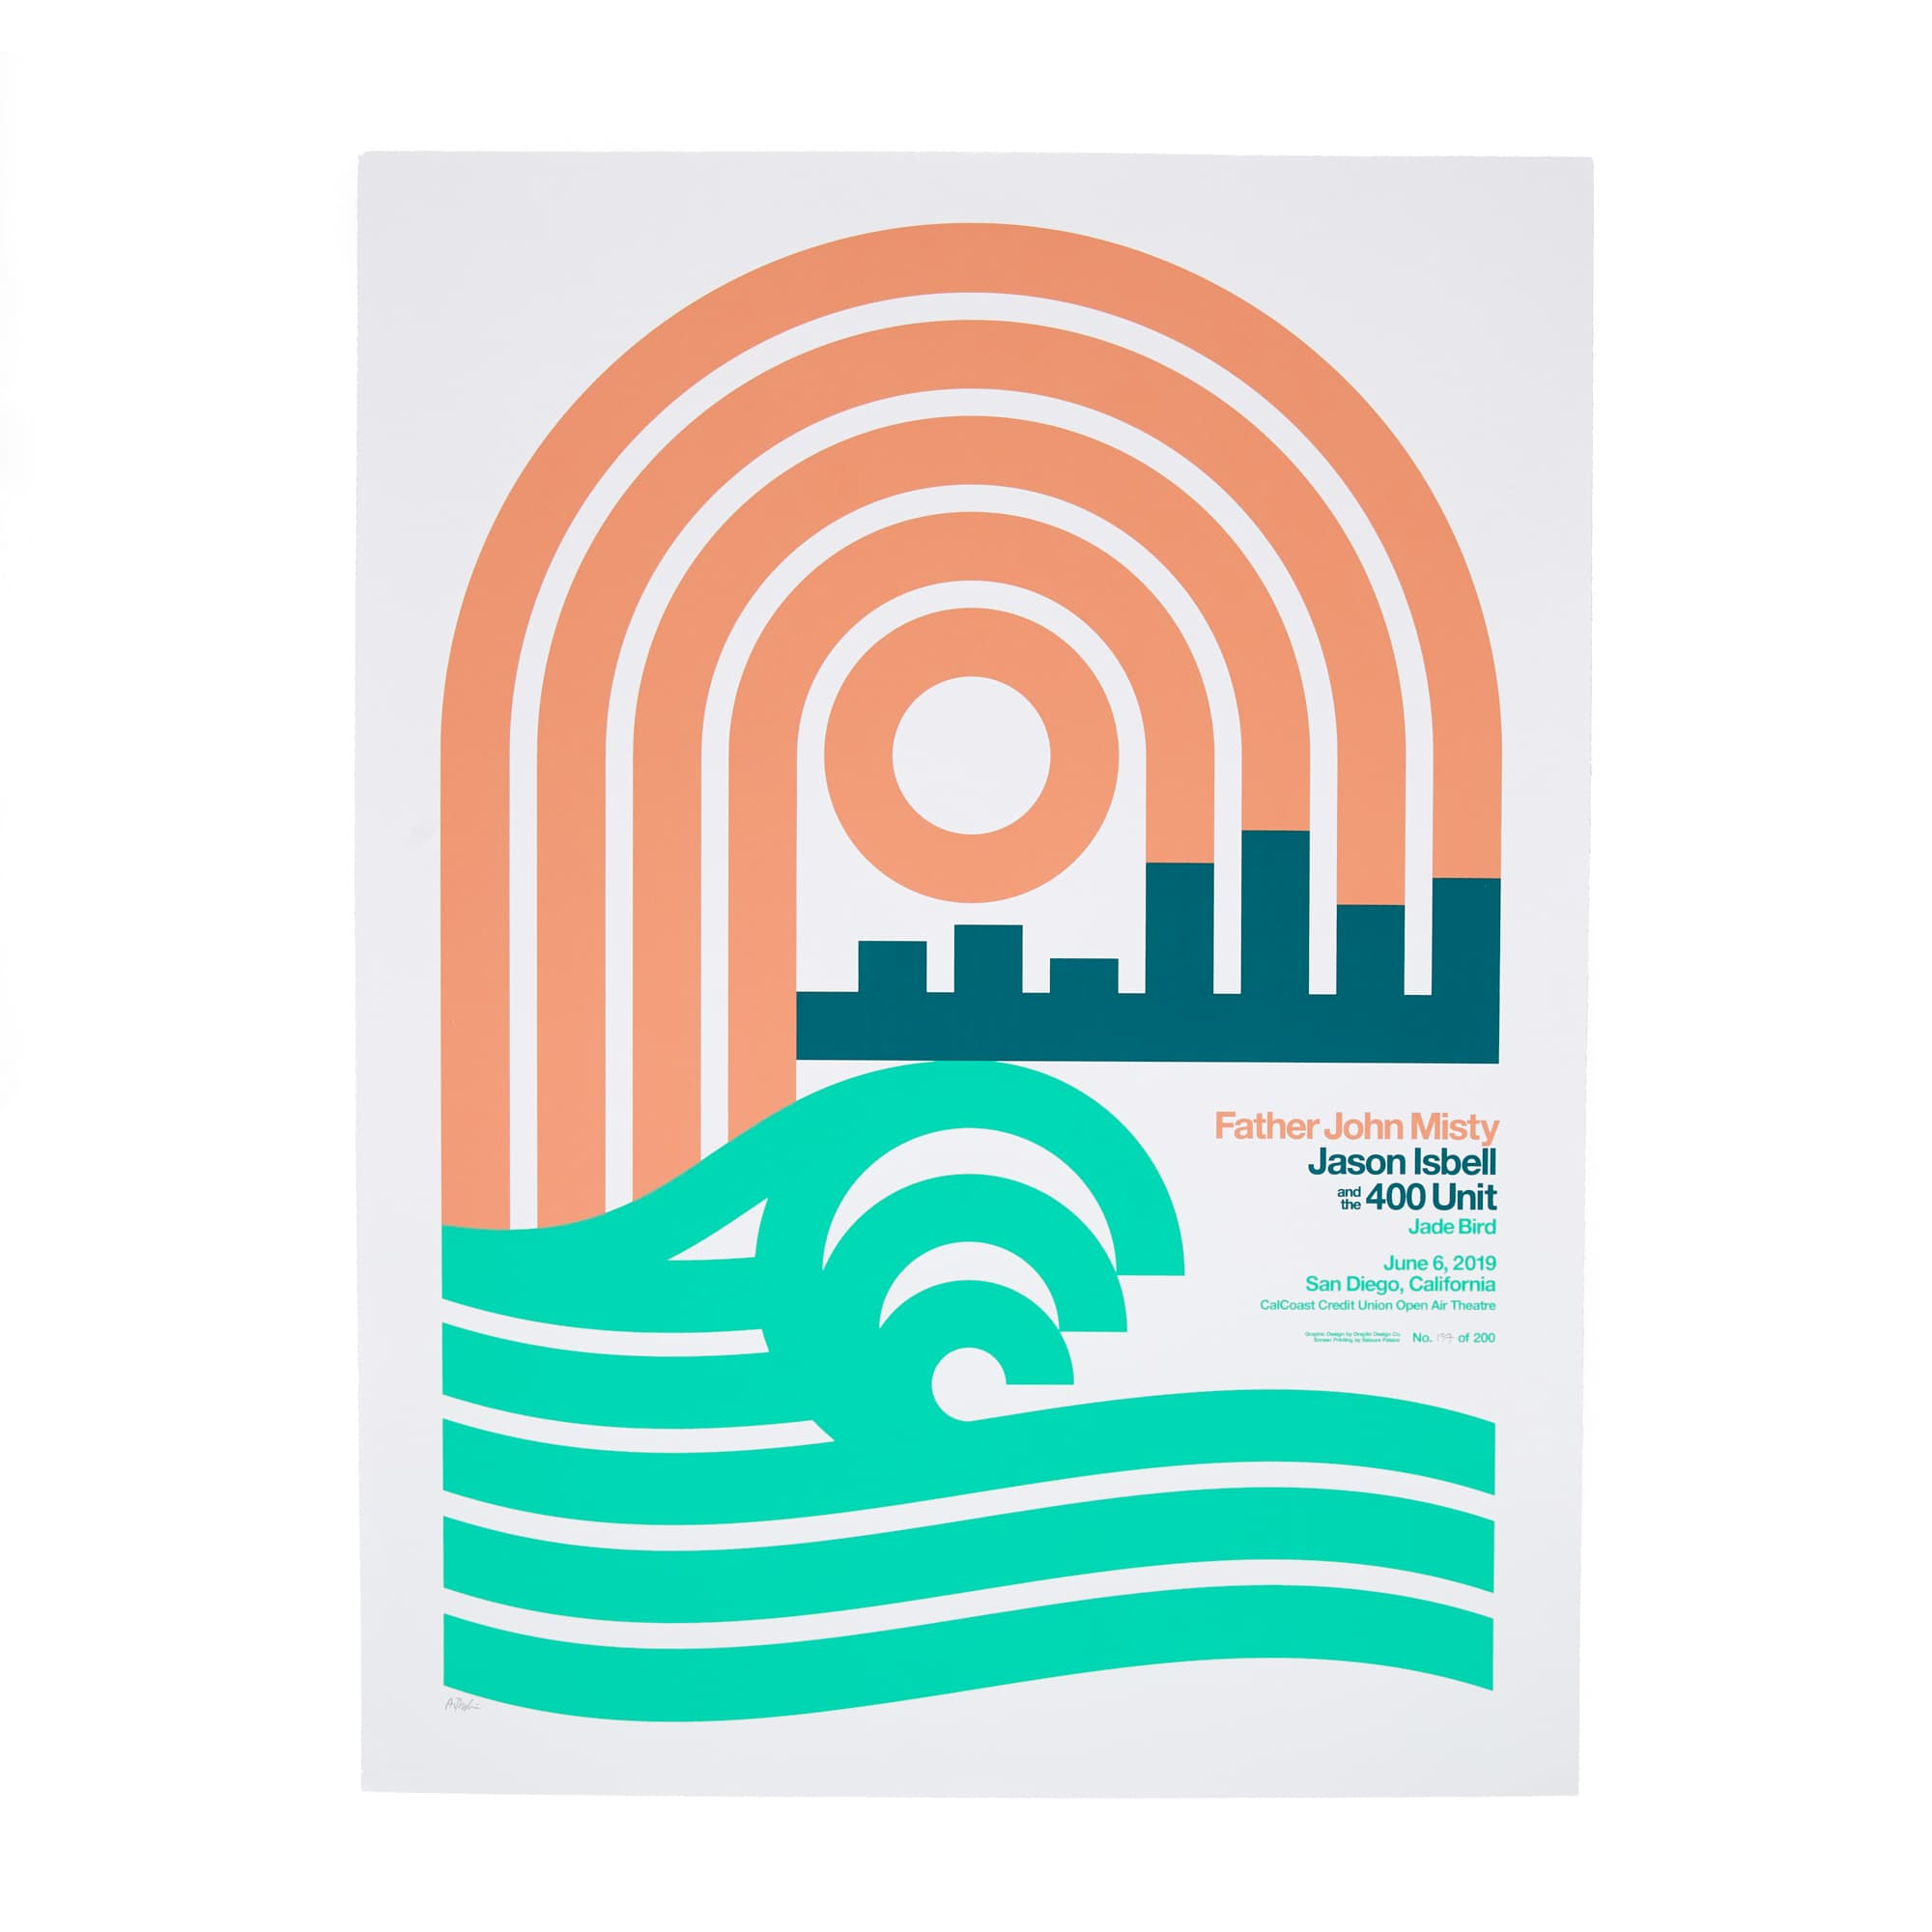 "June 6th 2019 - CalCoast Credit Union Open Air Theatre / San Diego, CA - 18"" x 24"" Screen Printed Poster"